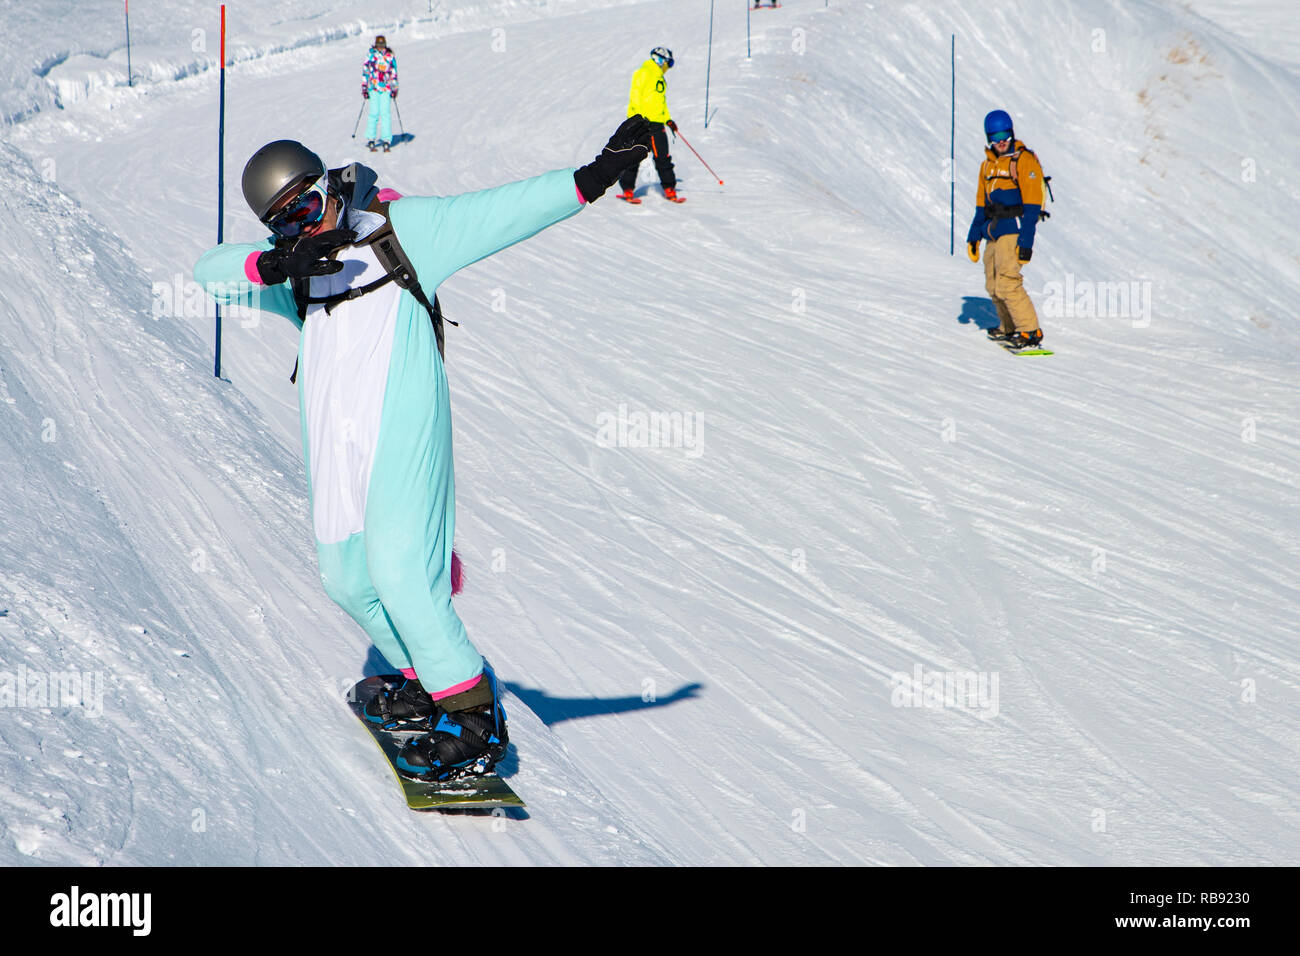 People enjoy snowboard for winter holiday in Alps area, Les Arcs 2000, Savoie, France, Europe - Stock Image